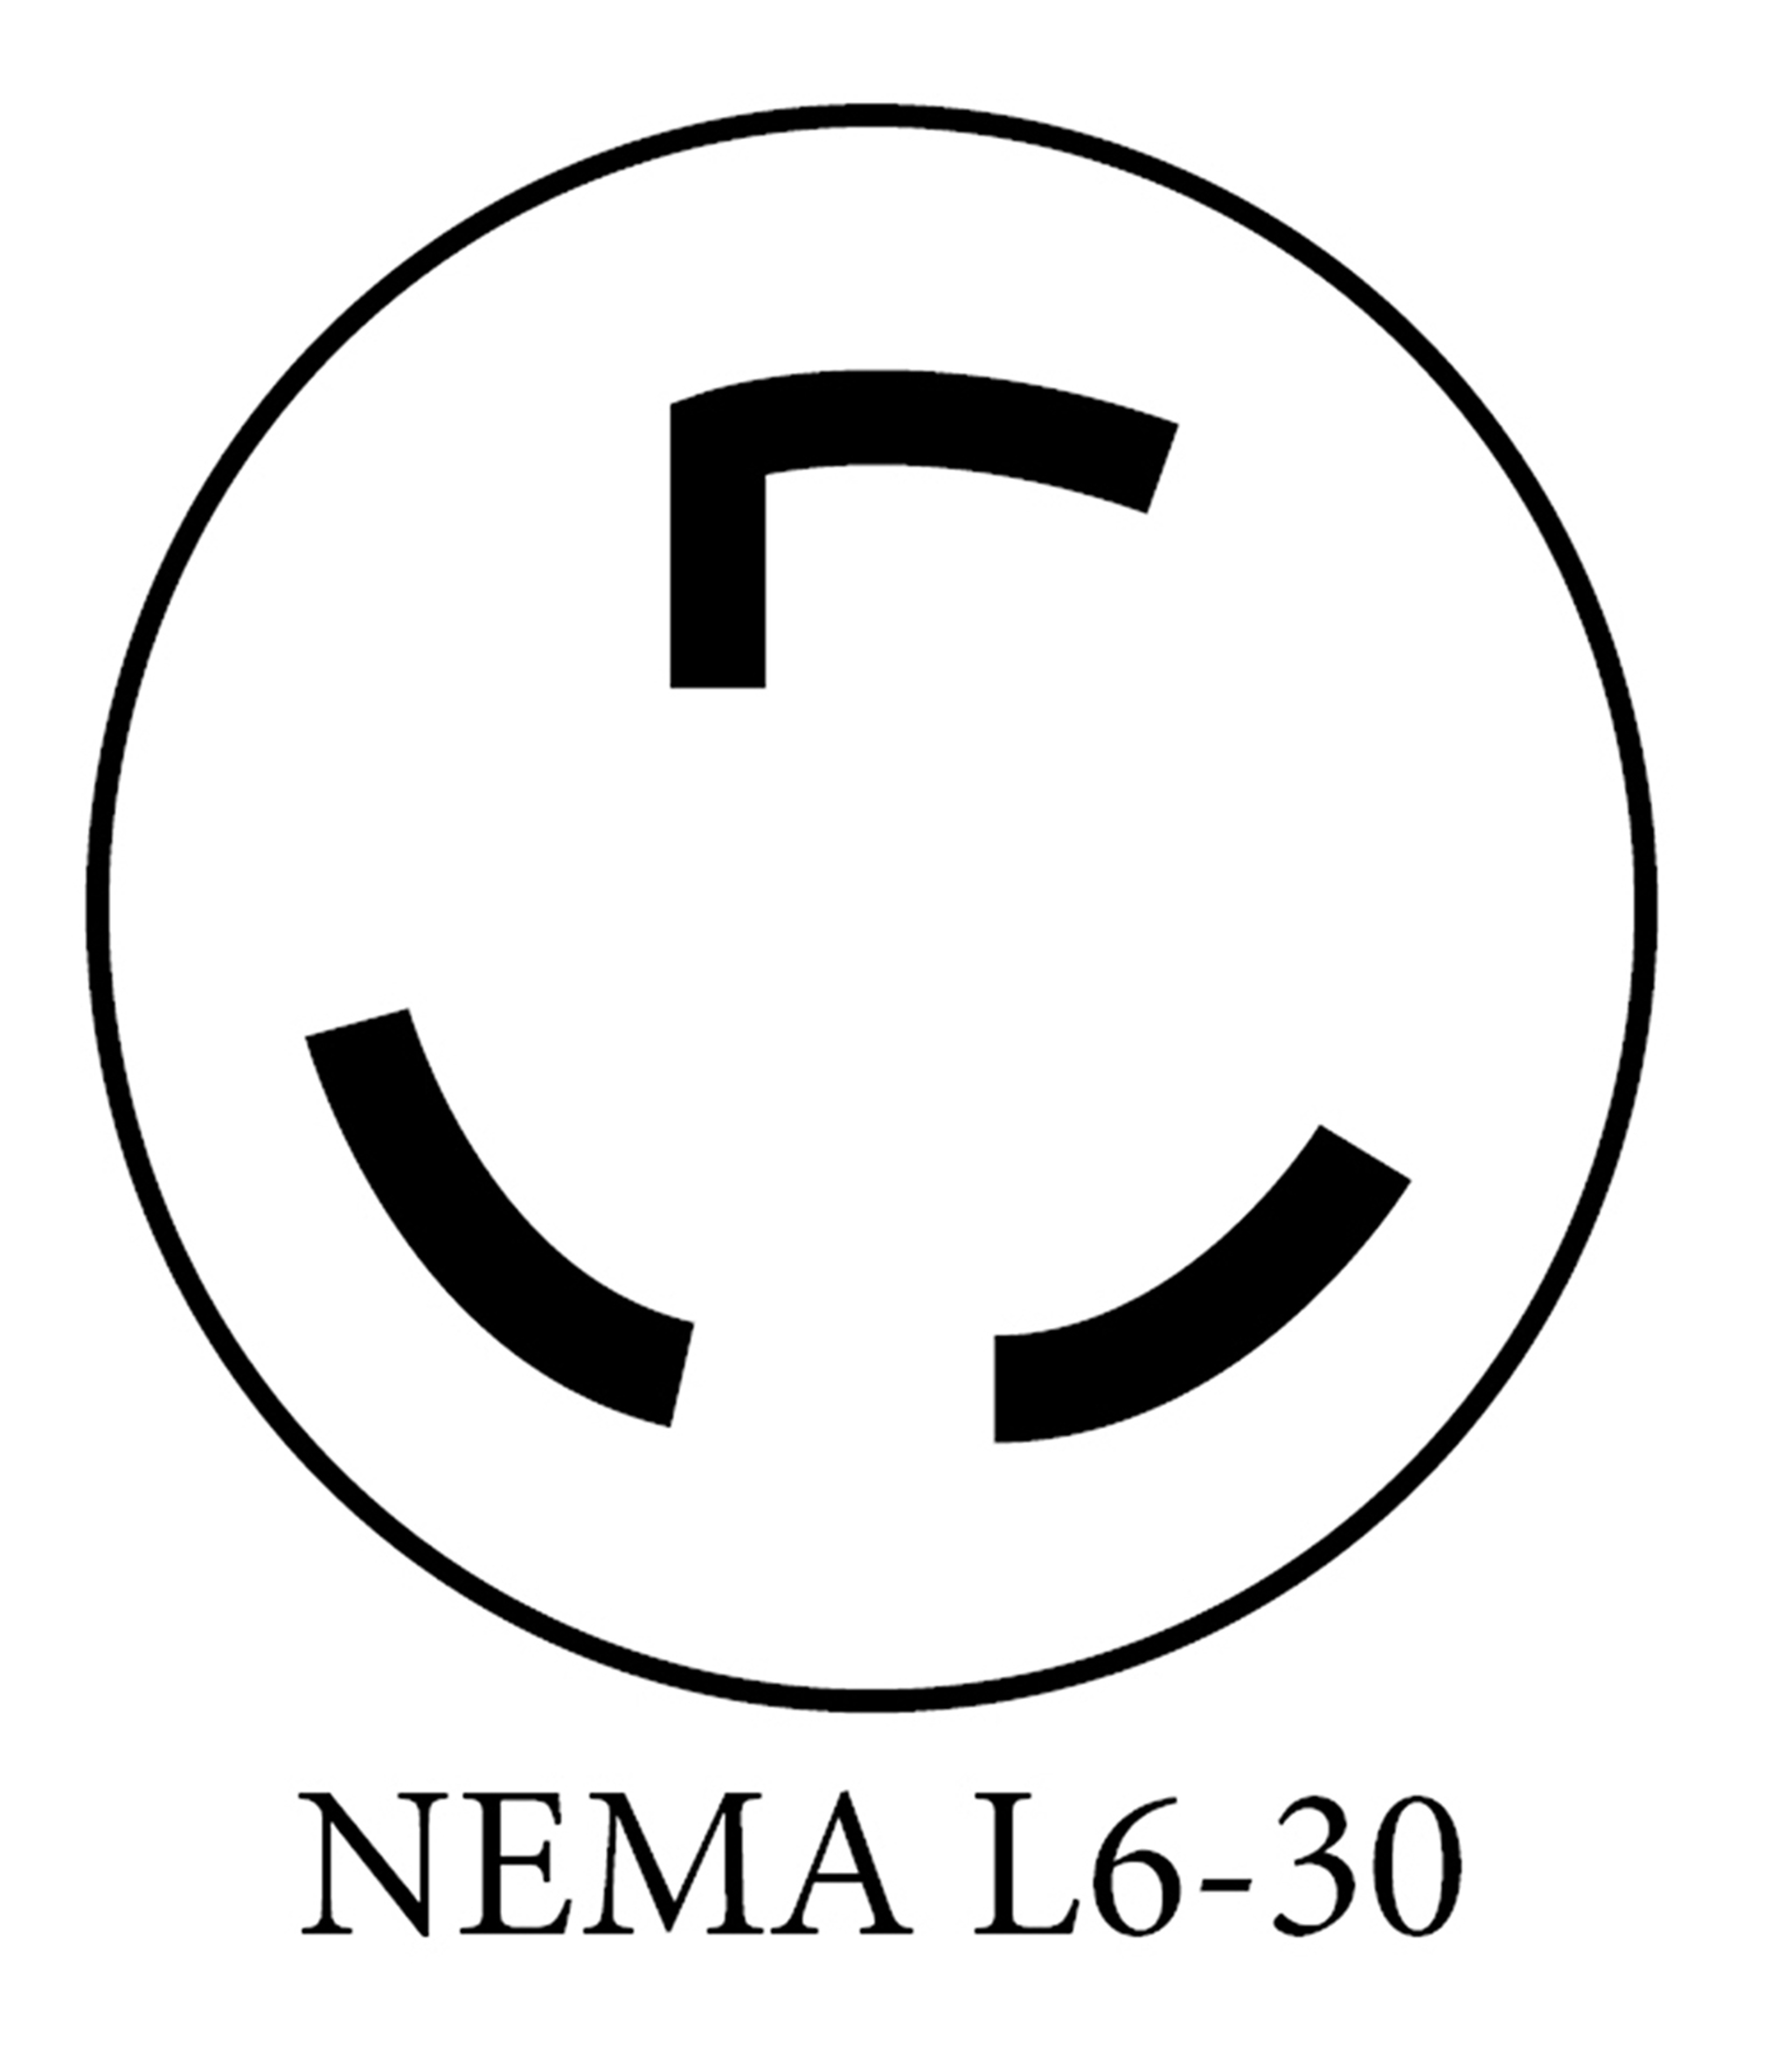 nema 6 20p wiring diagram nema image wiring diagram nema 6 20r wiring solidfonts on nema 6 20p wiring diagram